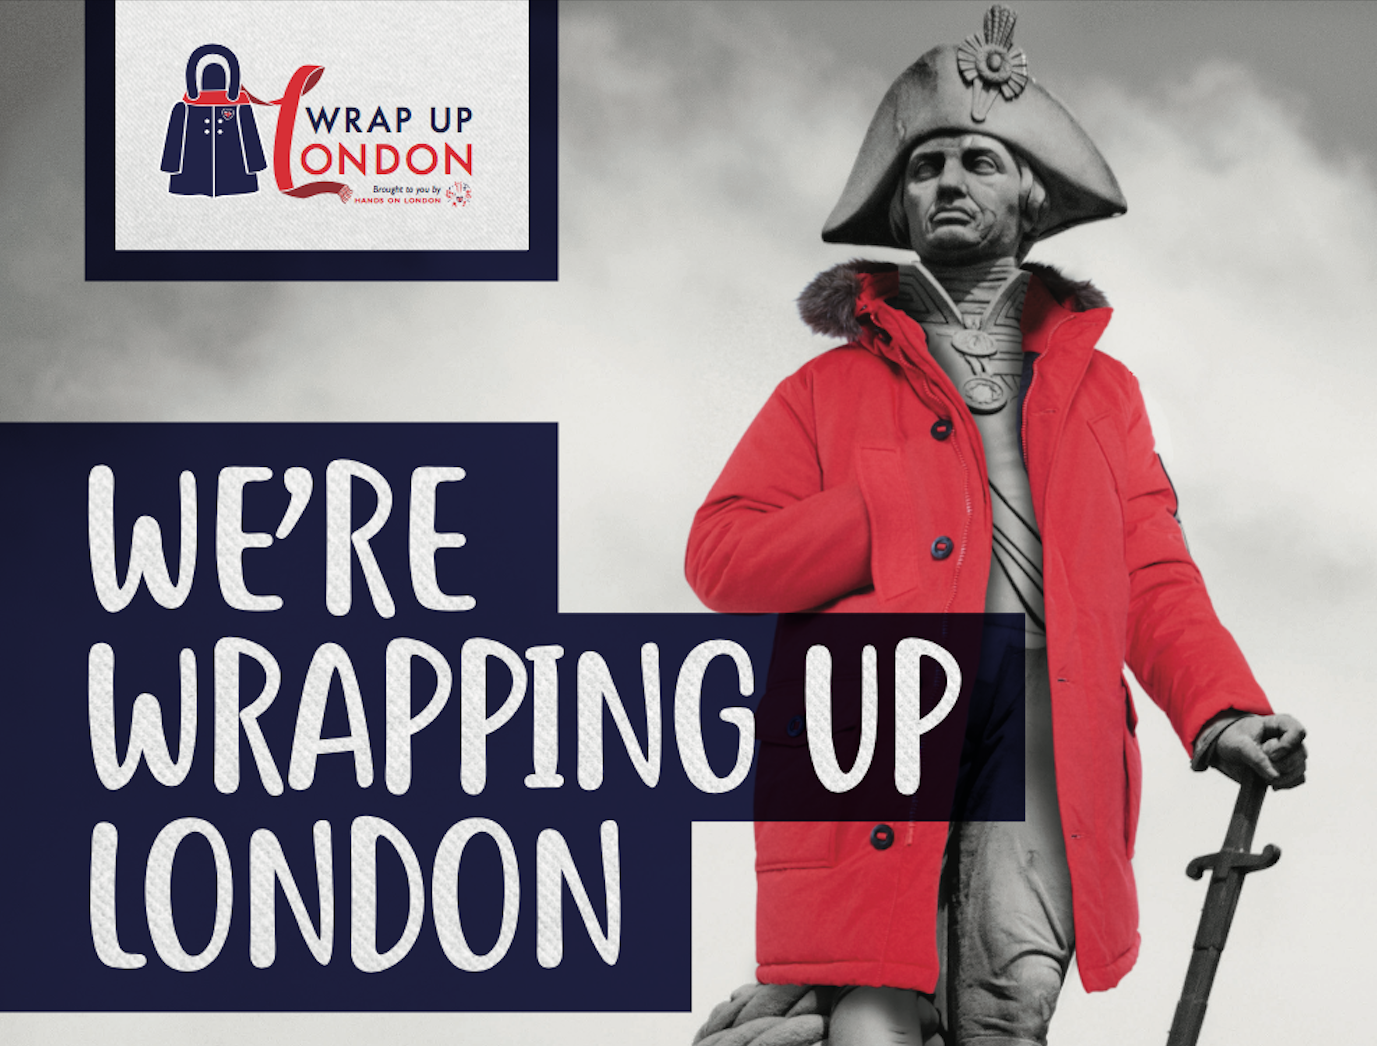 Wrap Up London blog